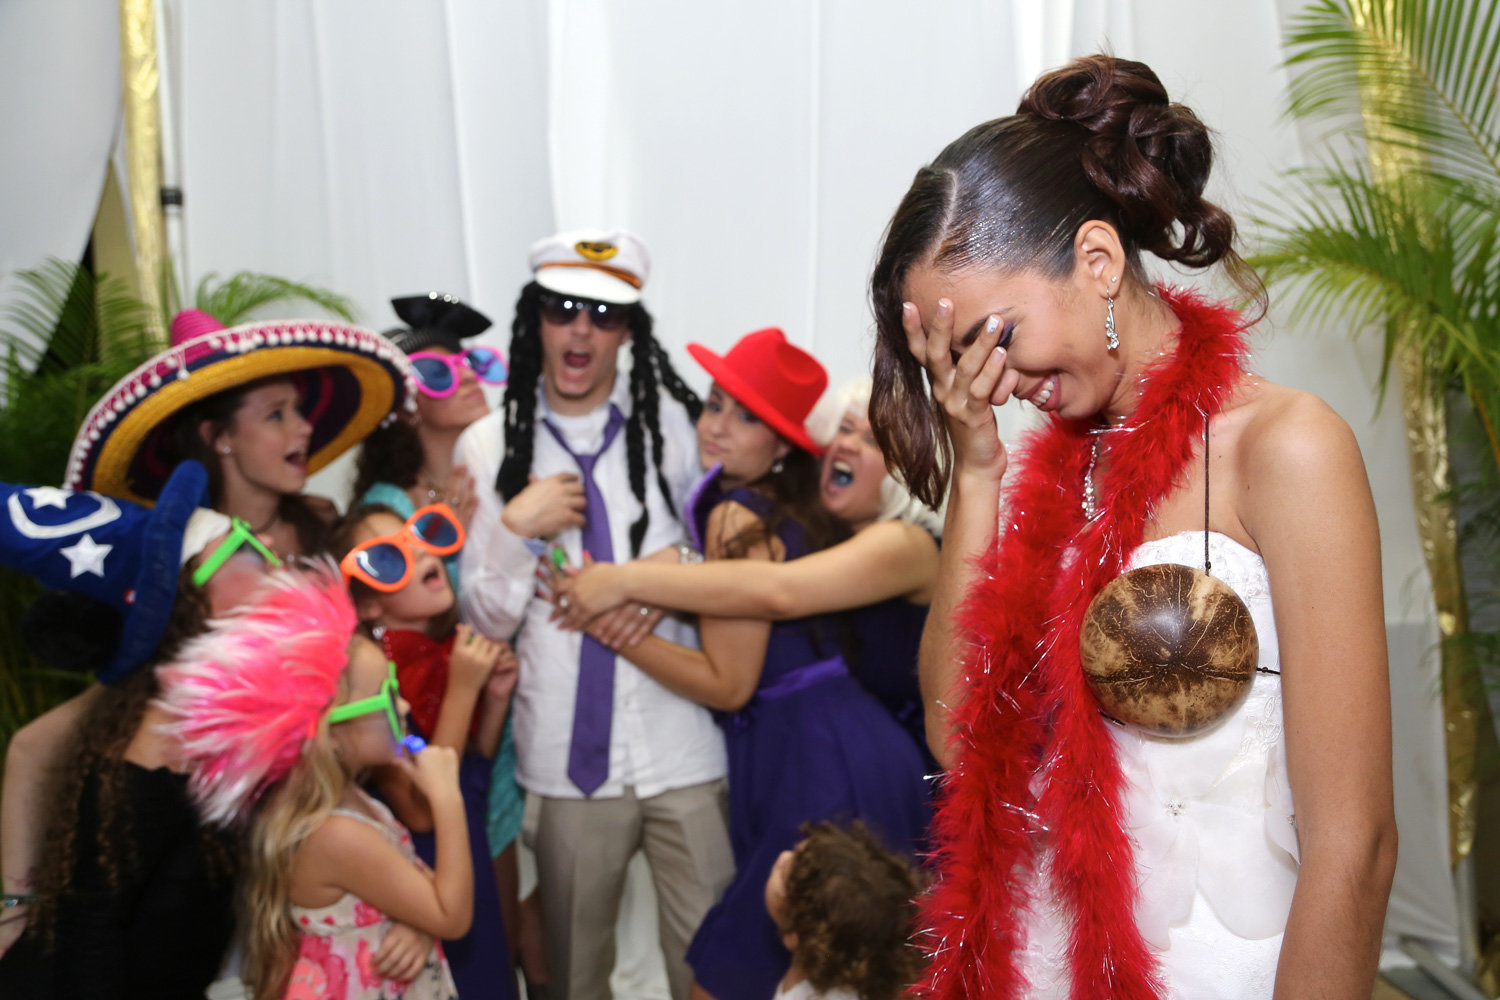 Family having fun in wedding photobooth. Photo by Ross Photography, Trinidad, W.I..